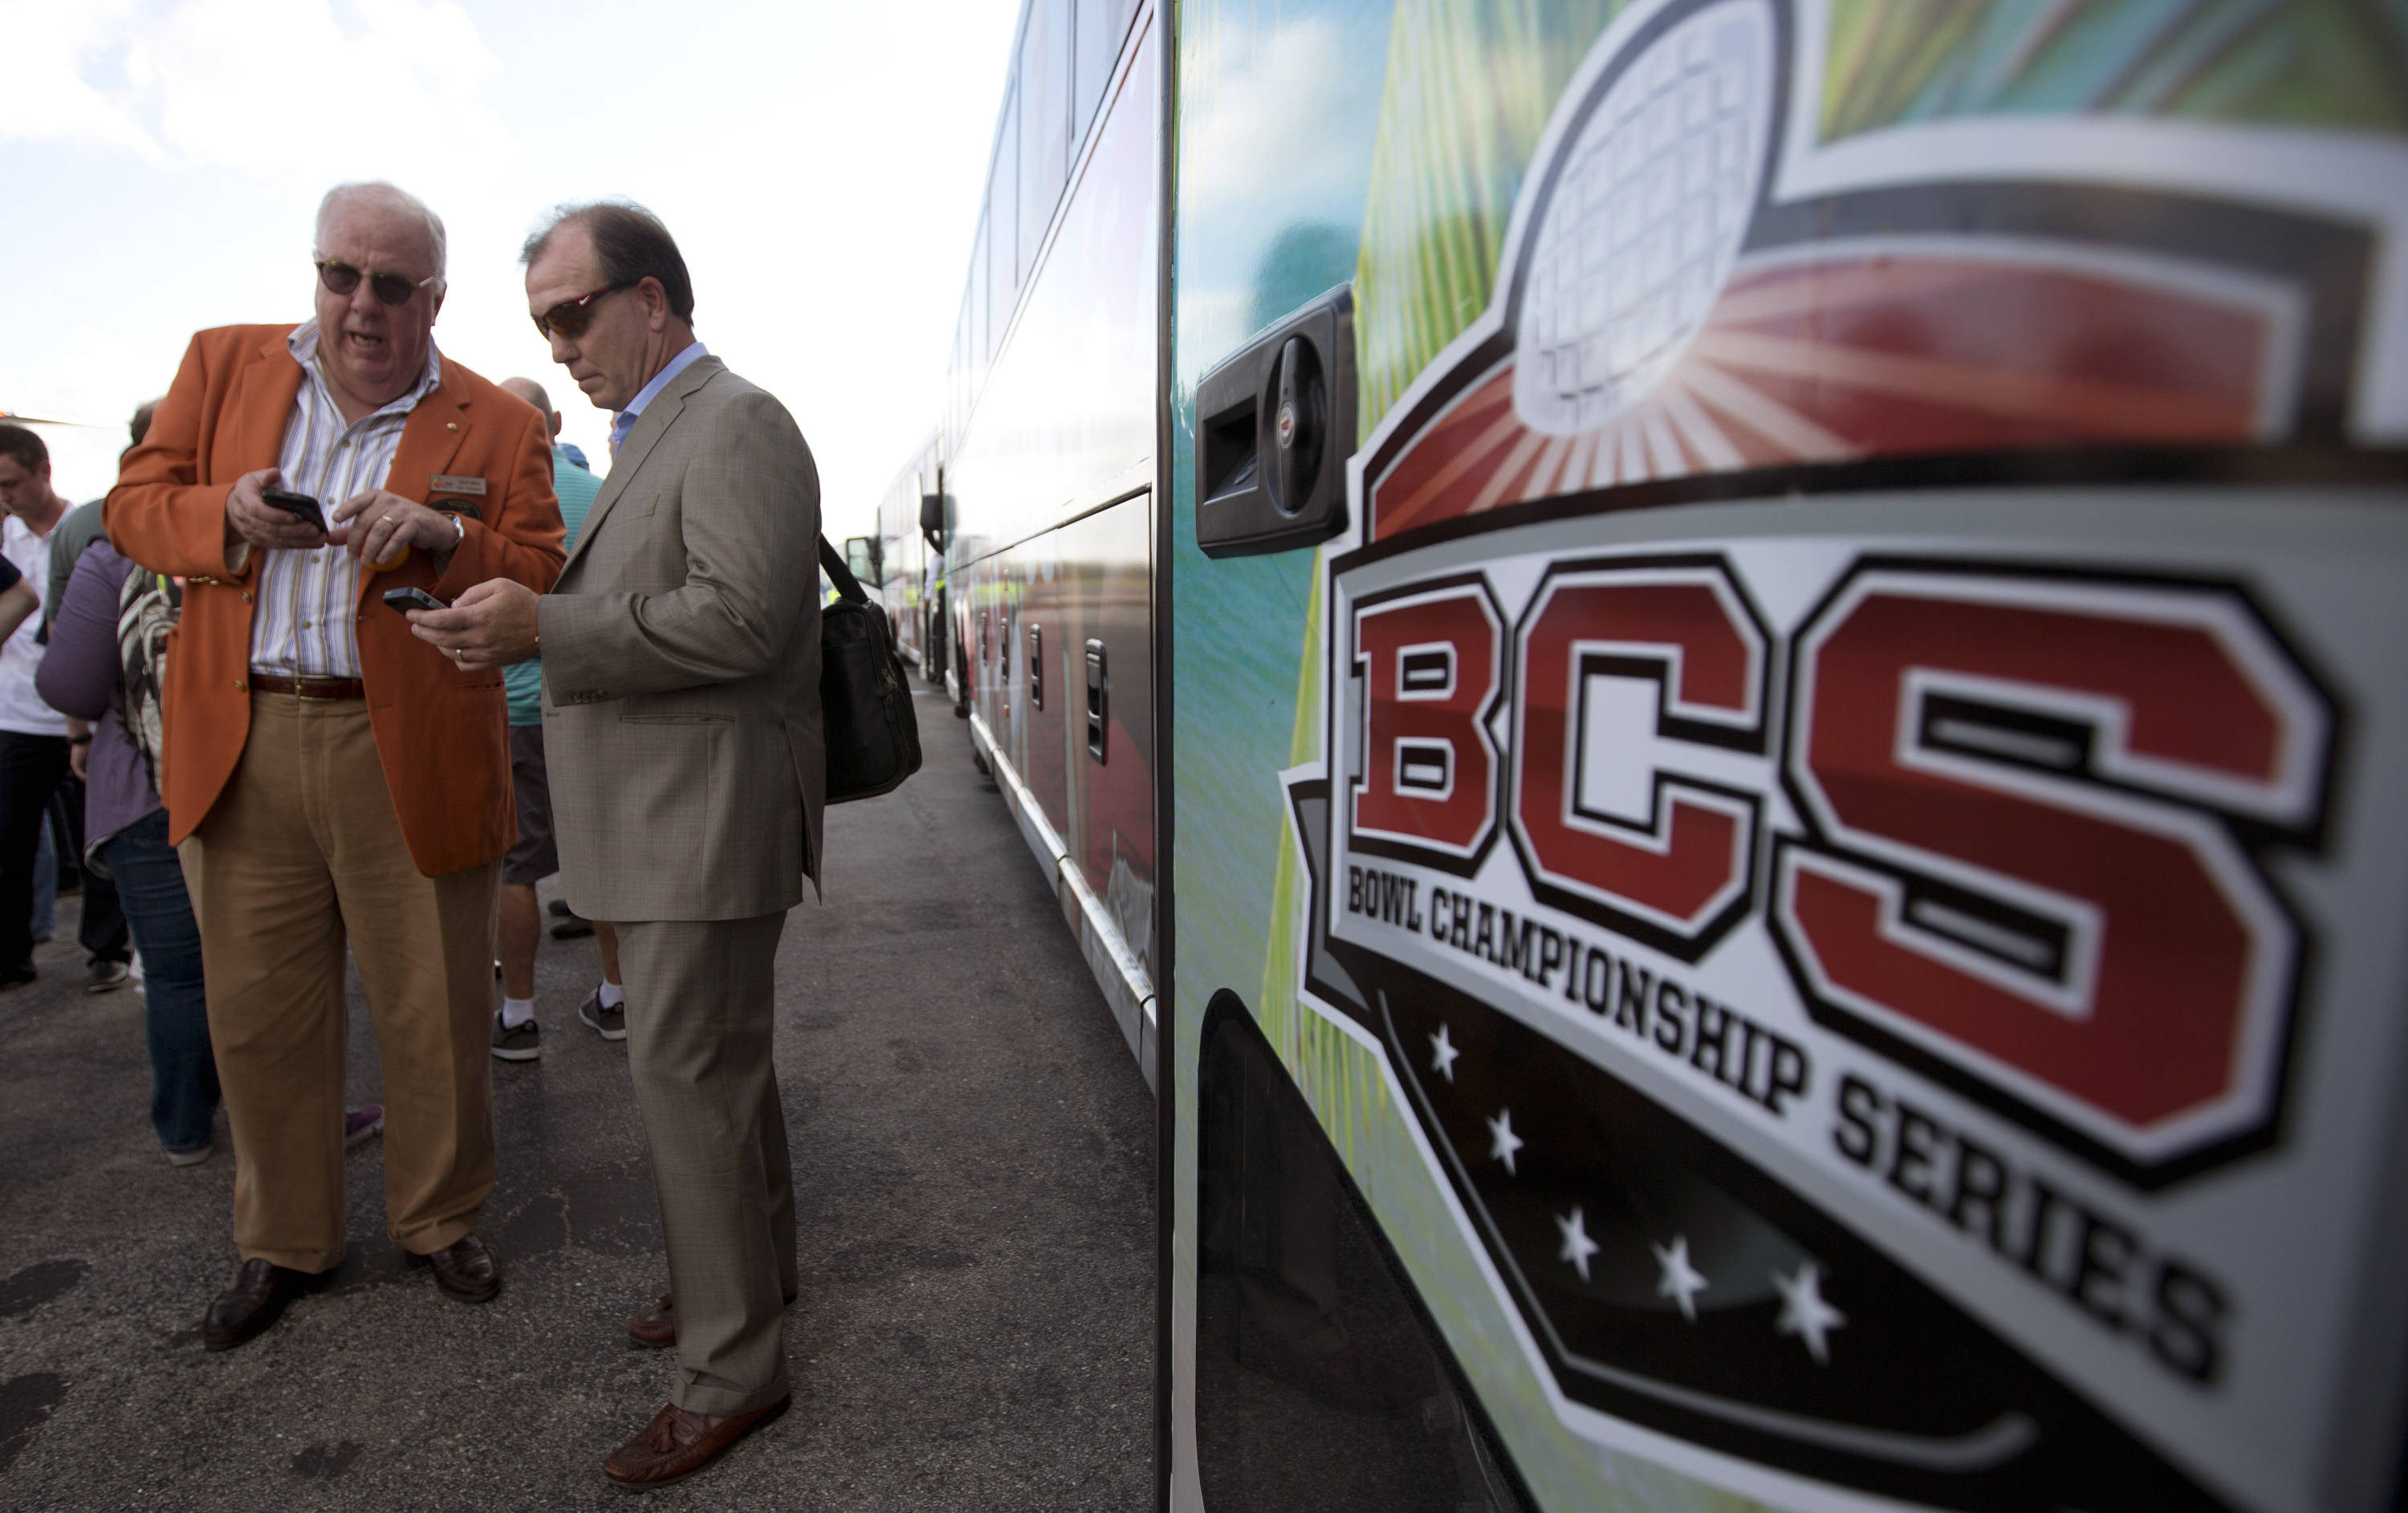 An Orange Bowl official, left, talks to Florida State football coach Jimbo Fisher, Wednesday, Dec. 26, 2012, after his team arrived in Fort Lauderdale, Fla., for the Orange Bowl Classic NCAA college football game against Northern Illinois in Miami, Jan. 1, 2013. (AP Photo/J Pat Carter)